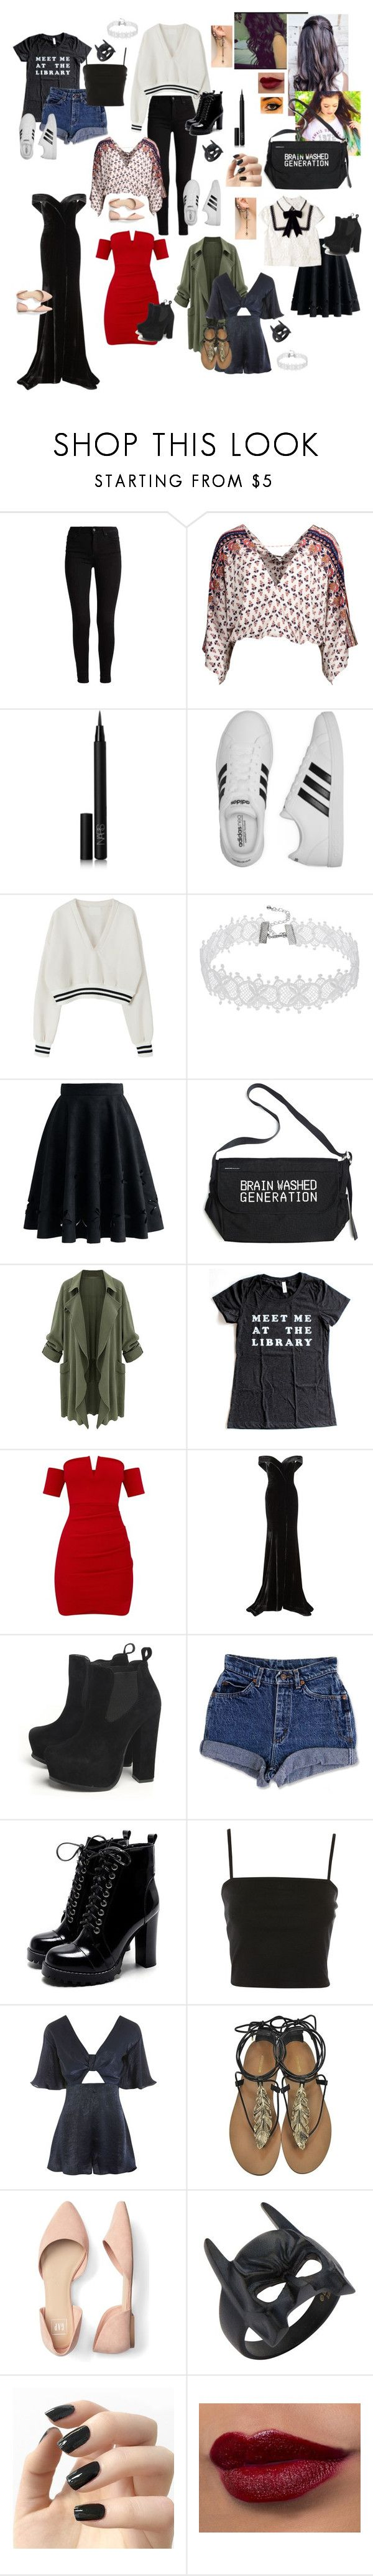 """""""New random item #1 of collections"""" by haileyscomet95 ❤ liked on Polyvore featuring NARS Cosmetics, adidas, Chicwish, Undercover, Rachel Gilbert, AX Paris, Topshop, Roberto Cavalli and Incoco"""